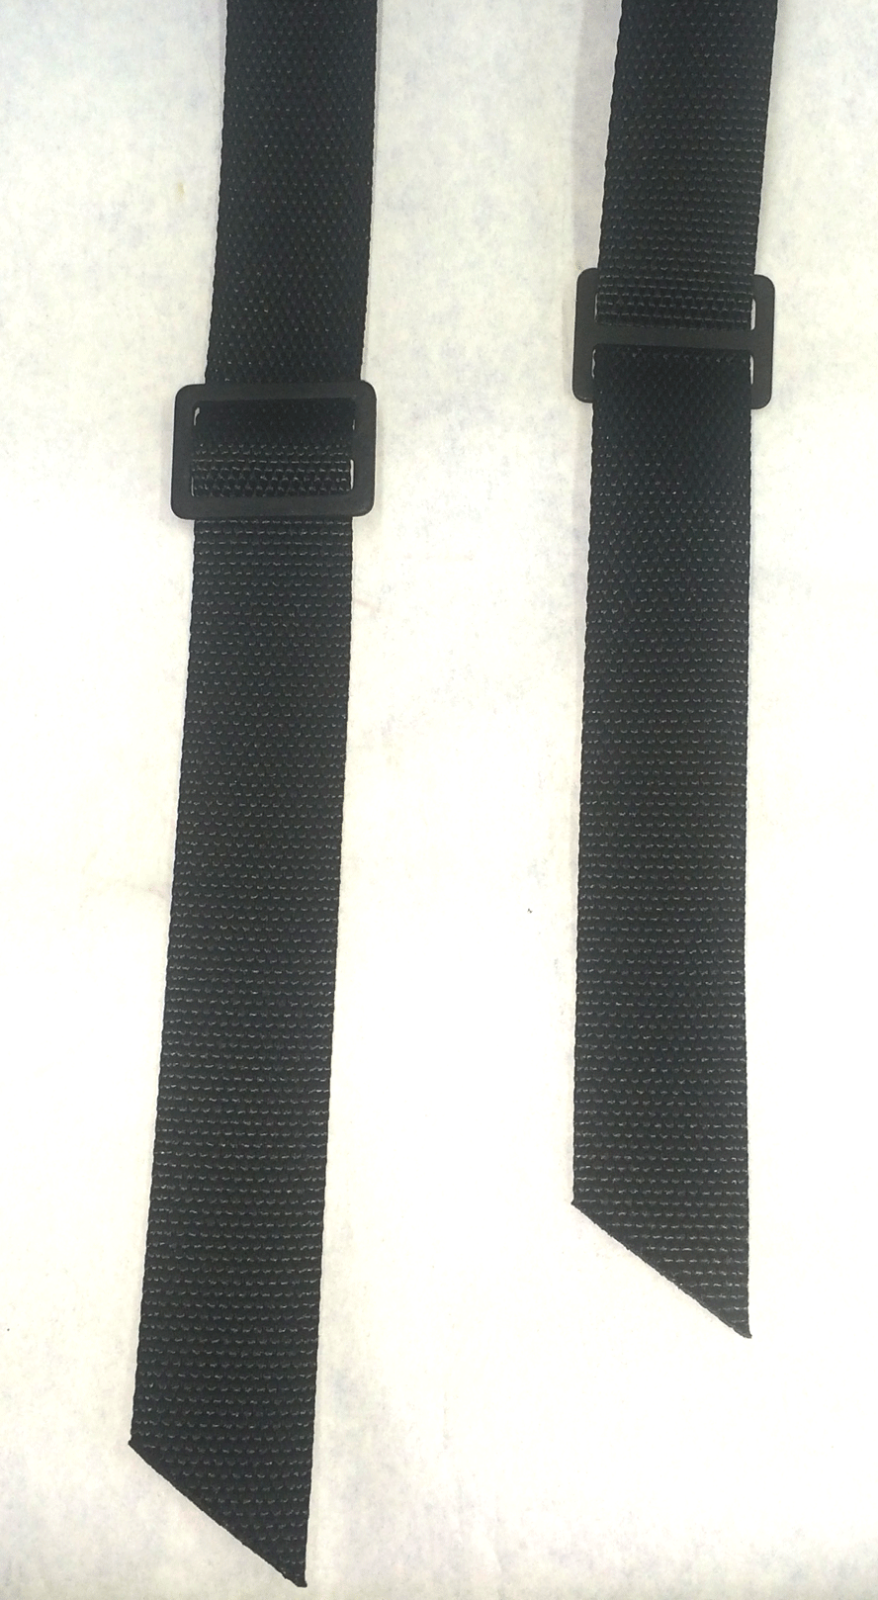 COLT Rifle US Military Issue 2 Point Rifle Sling NSN:1005-01-368-9852 NEW 2